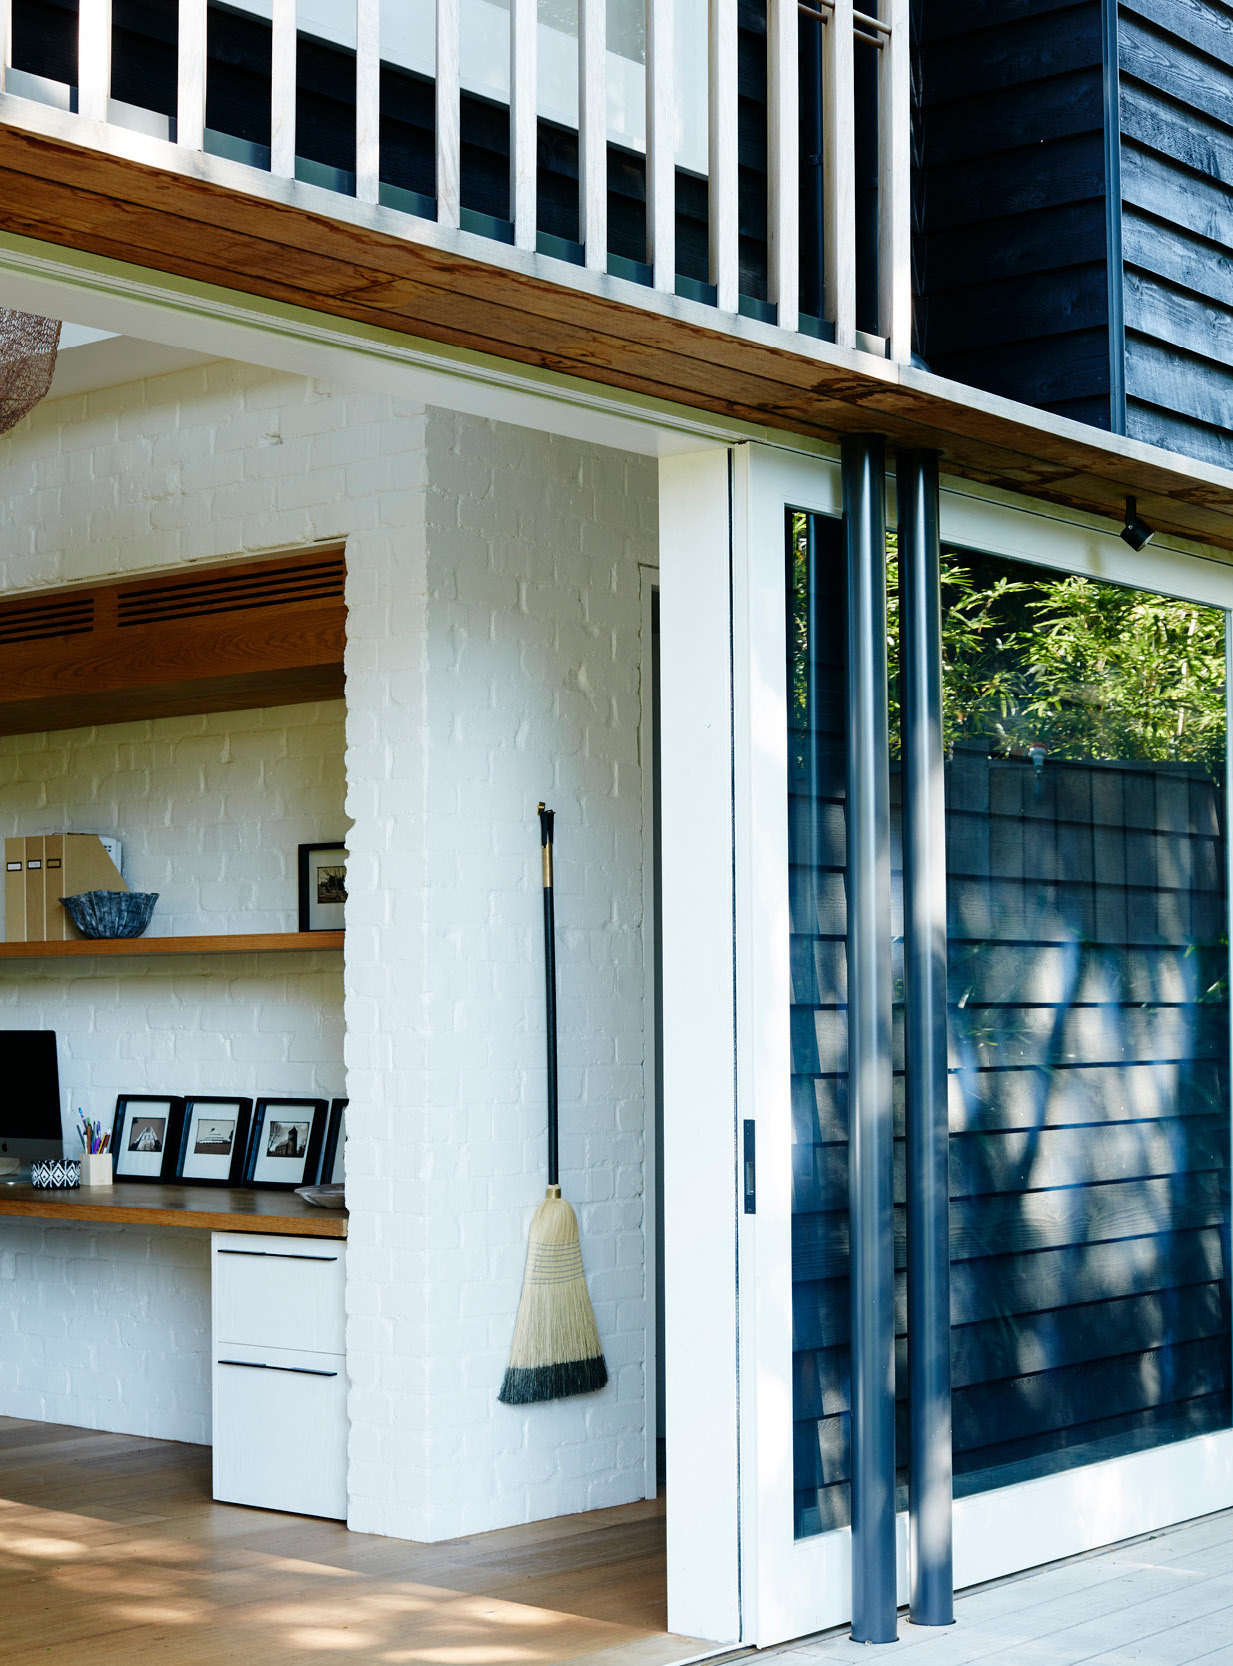 Also in Australia, an architect displays a black-accented broom that complements his home&#8